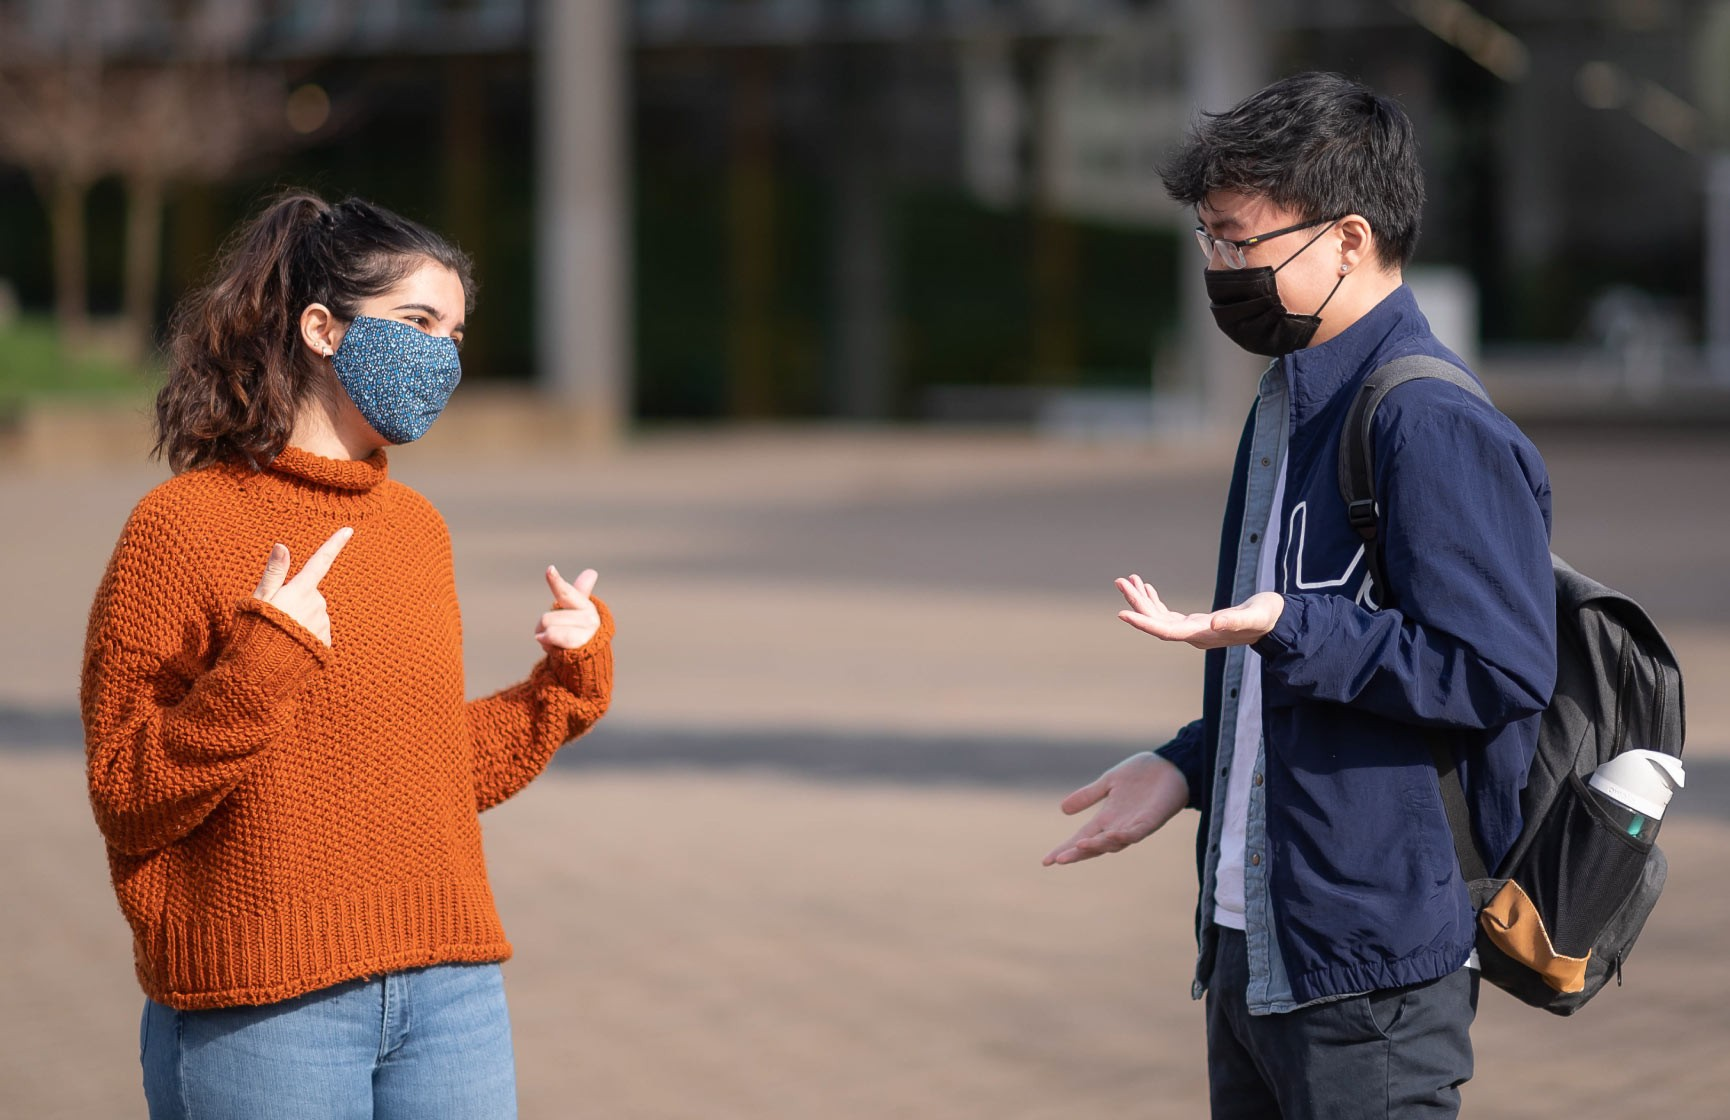 Two people wearing COVID-19 face masks use hand gestures to help communicate to each other